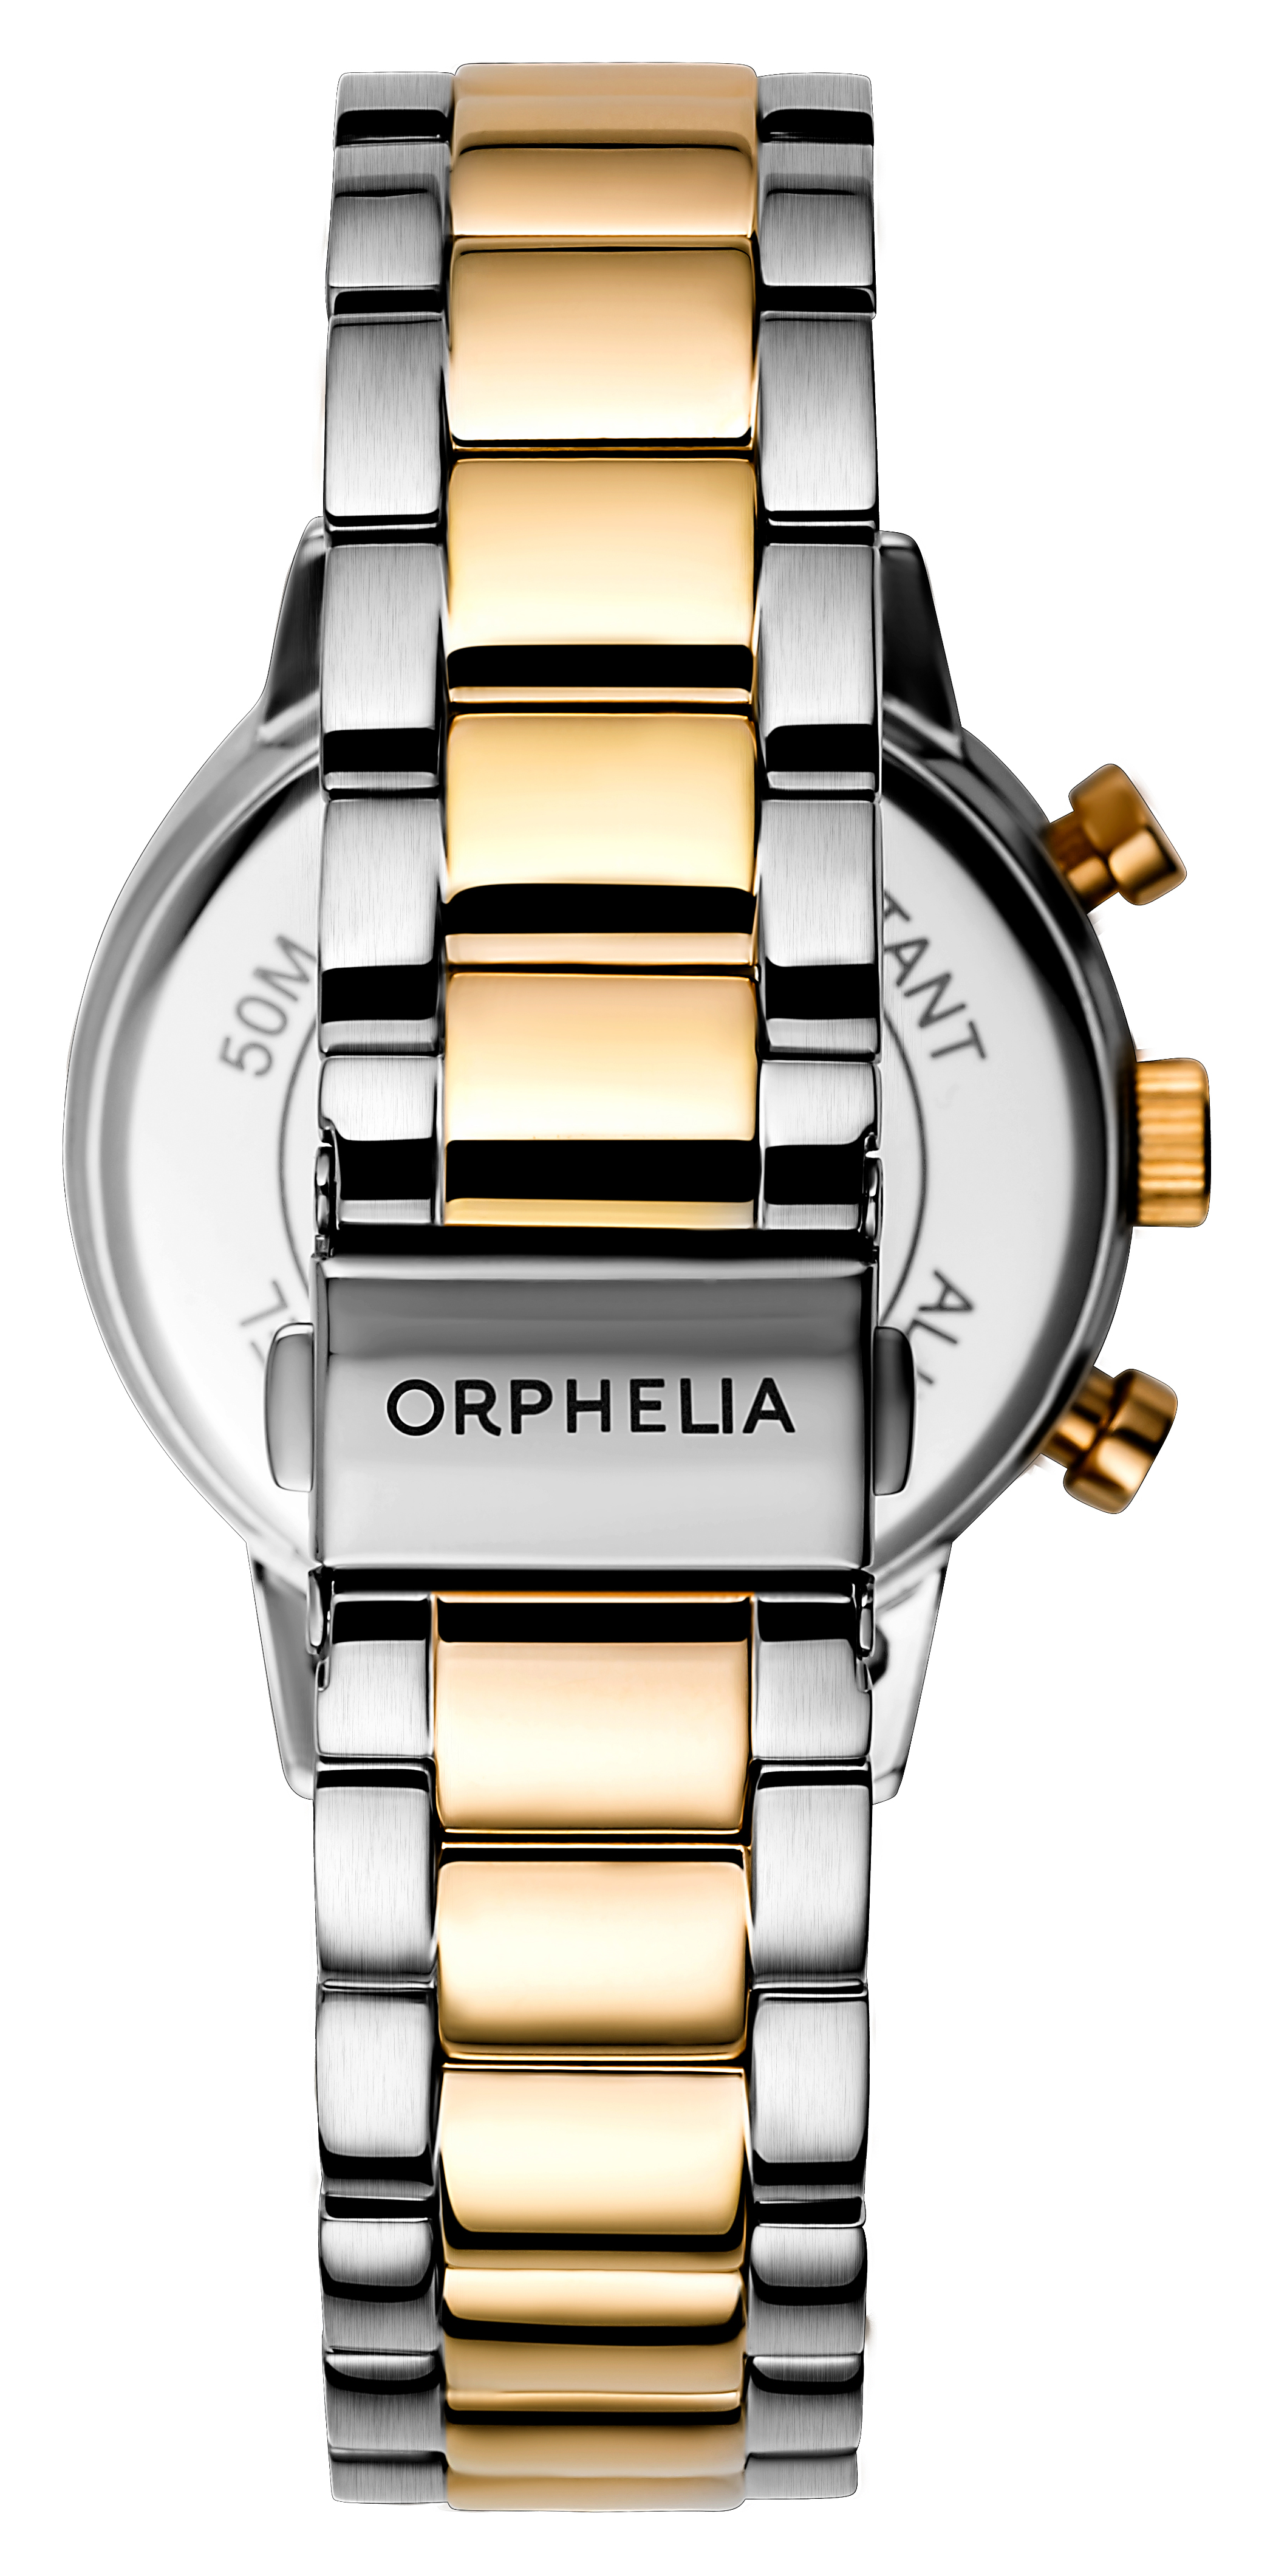 ORPHELIA Men Chronograph Watch Tempo OR82809 Brand New - $204.06